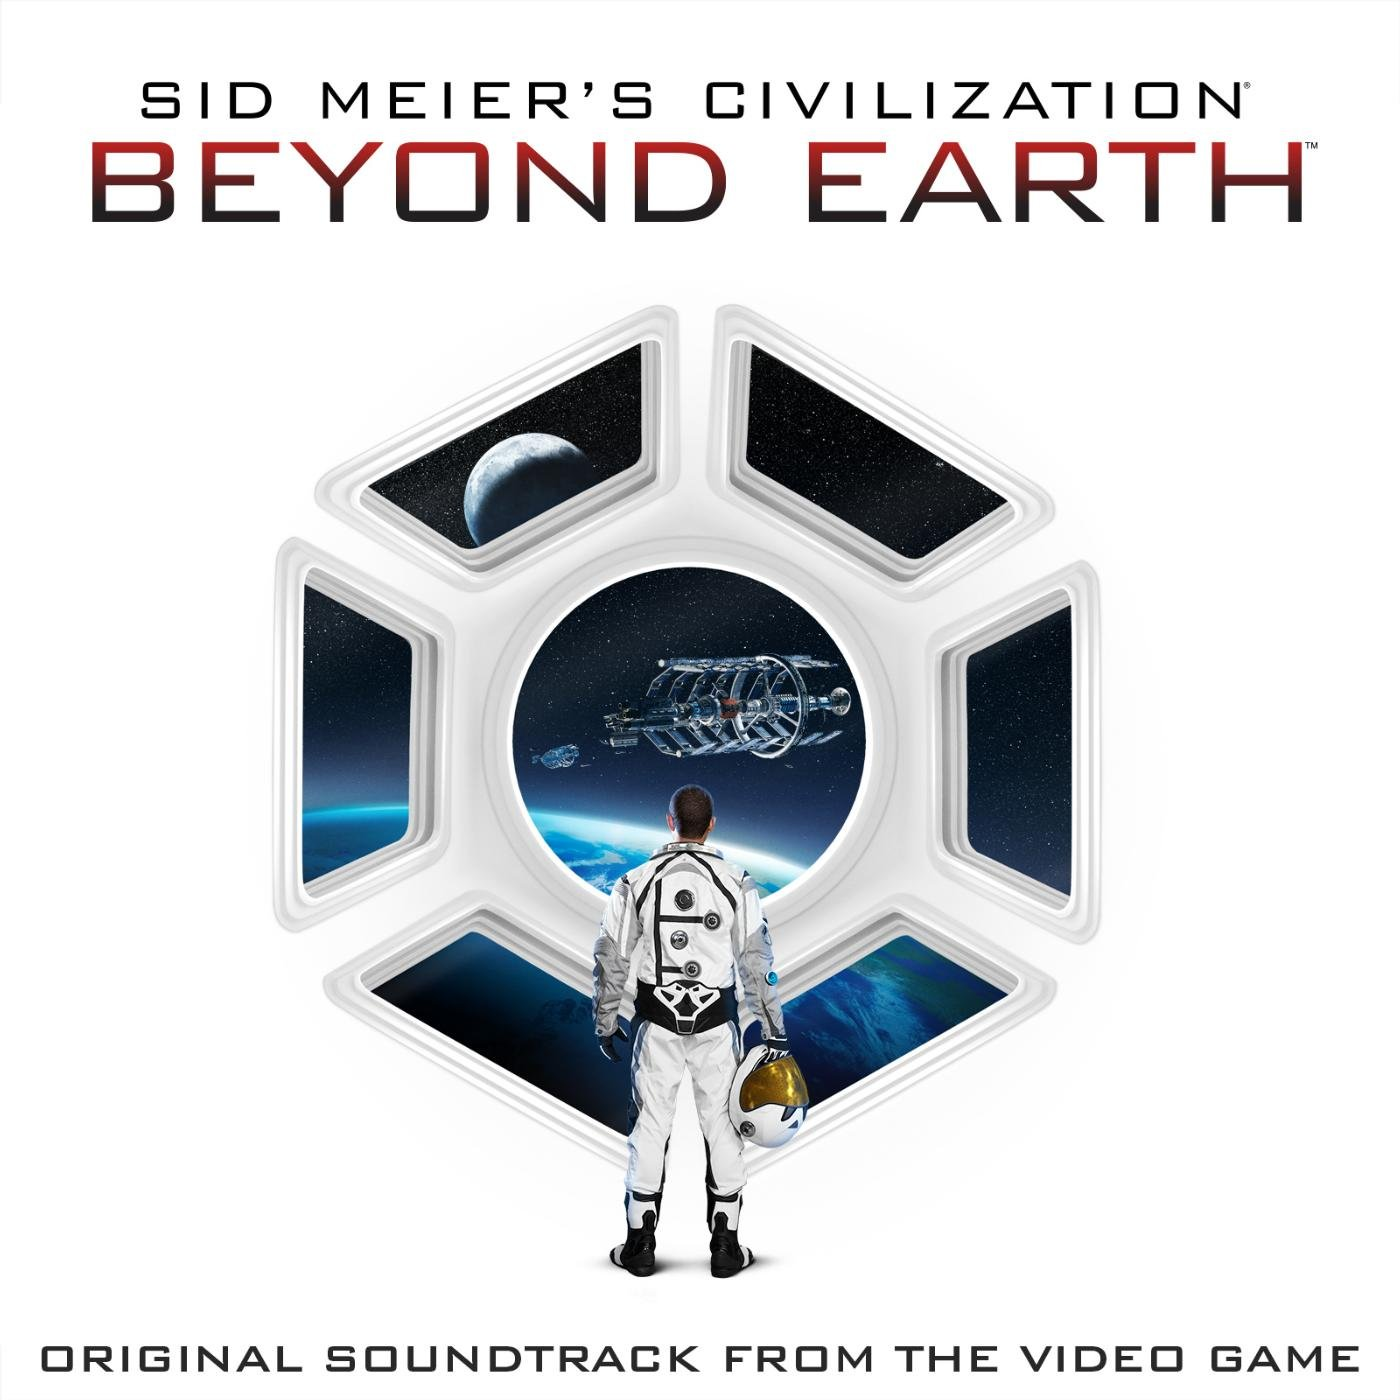 Sid_Meiers_Civilization-Beyond_Earth_Original_Soundtrack_from_the_Video_Game__Cover1400x1400.jpg